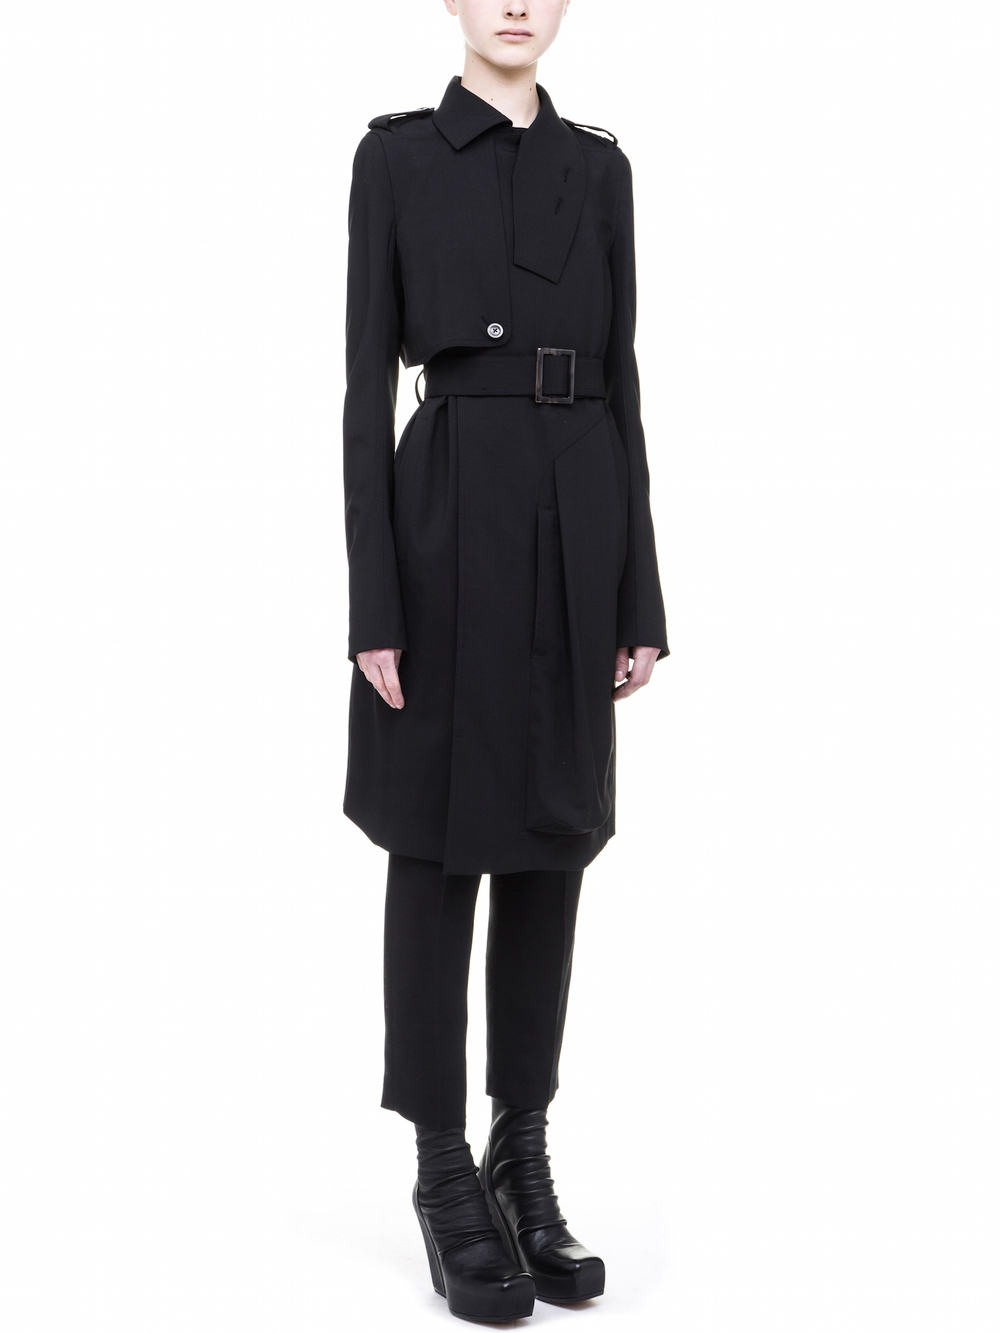 RICK OWENS TRENCH IN BLACK